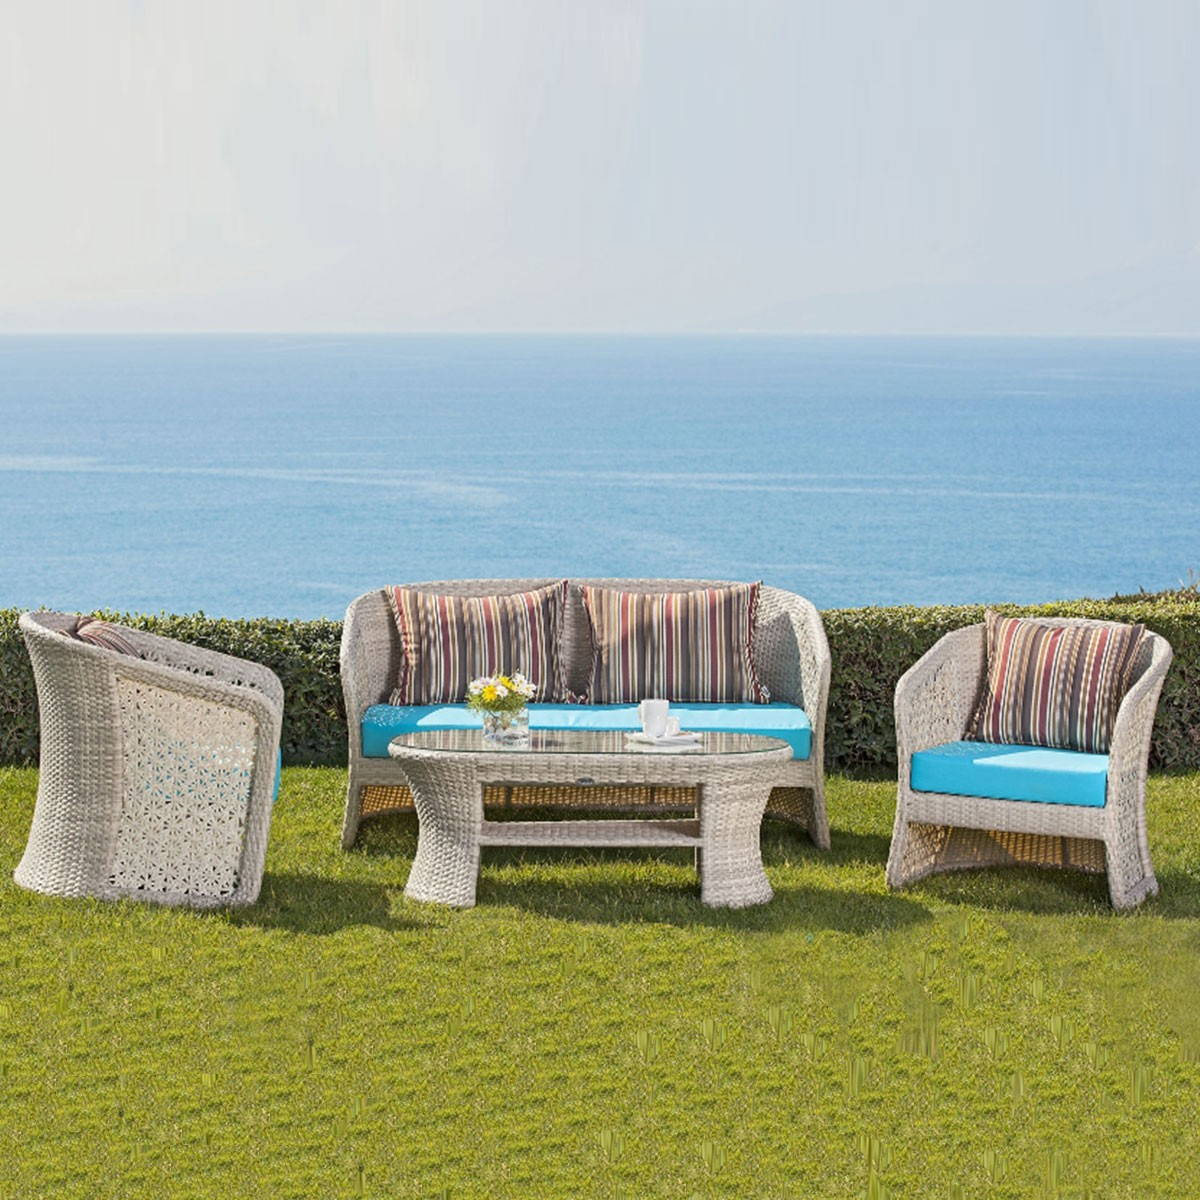 4-Piece PE Rattan Sofa Set: Loveseat, 2 Lounge Chairs, Coffee Table (LLS-FSAL01)